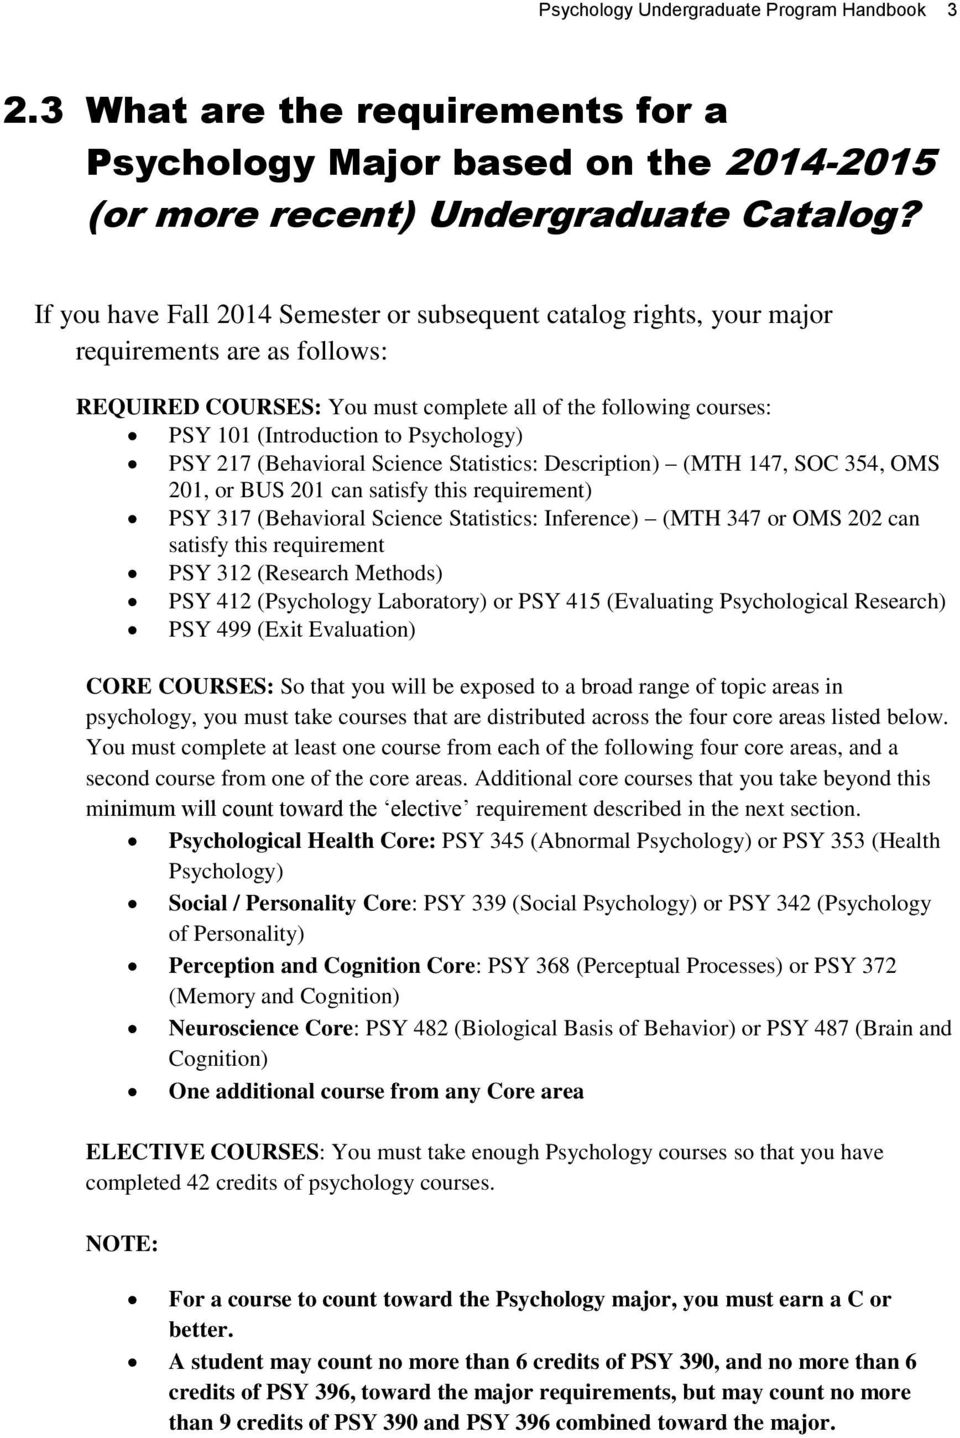 Psychology) PSY 217 (Behavioral Science Statistics: Description) (MTH 147, SOC 354, OMS 201, or BUS 201 can satisfy this requirement) PSY 317 (Behavioral Science Statistics: Inference) (MTH 347 or